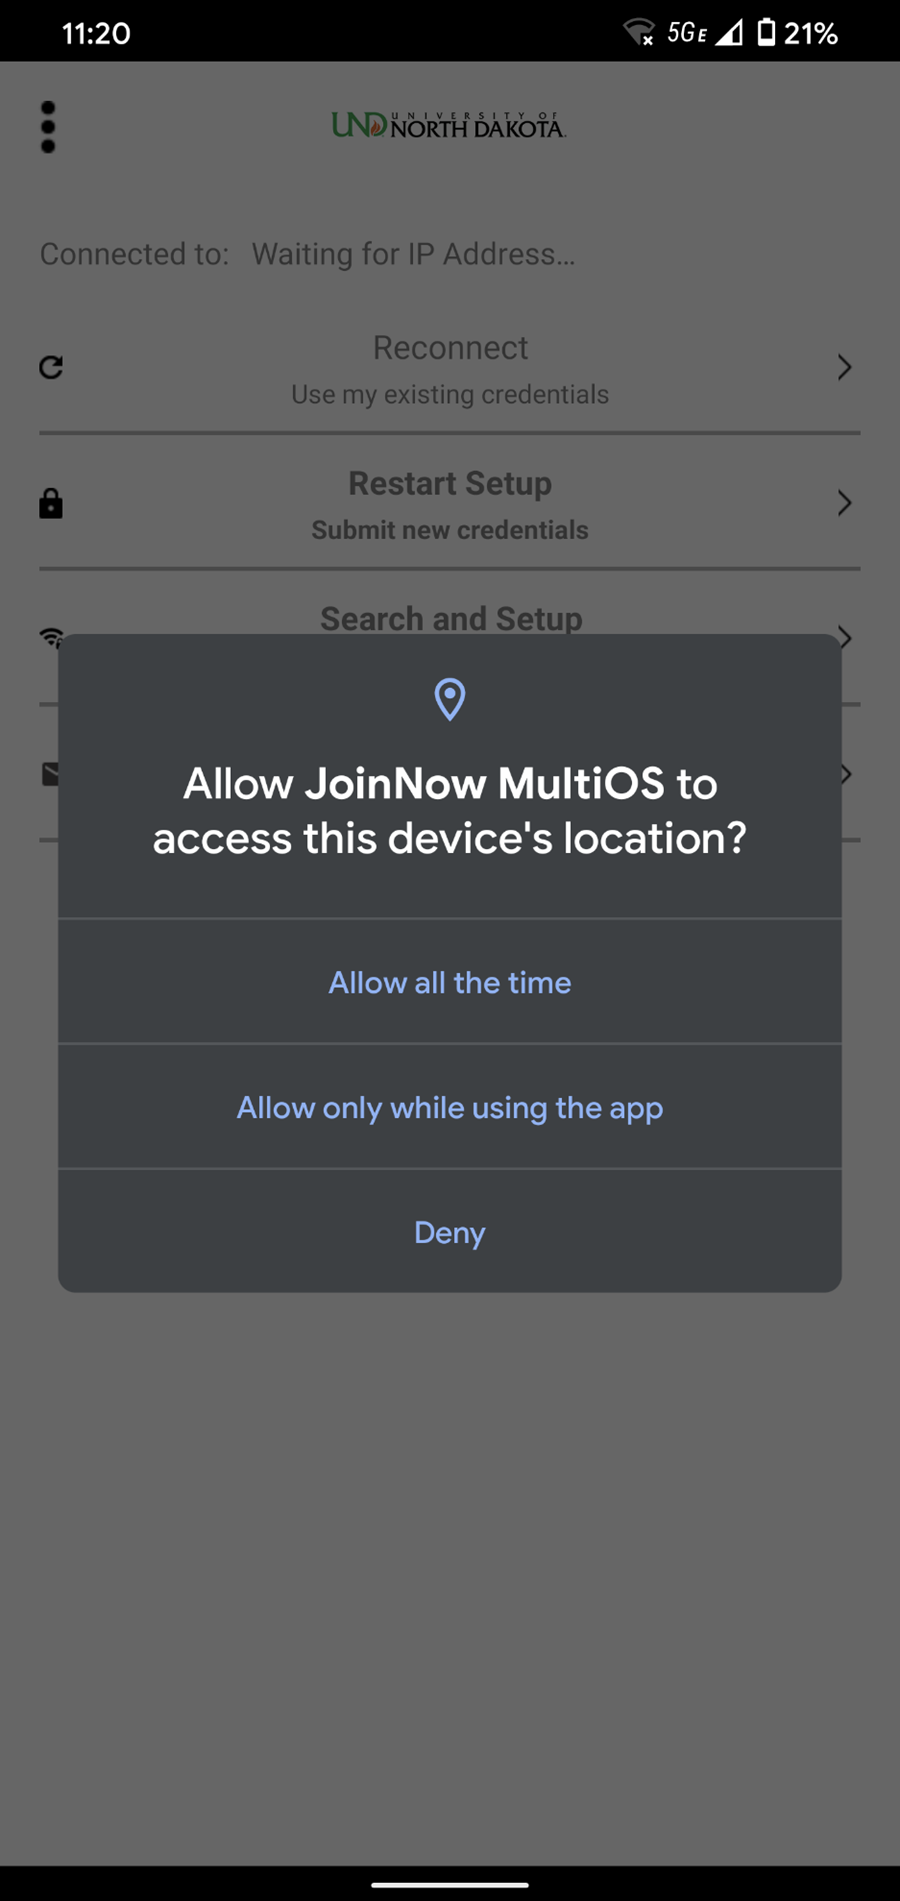 You will be presented with phone options of when to allow device location sharing.